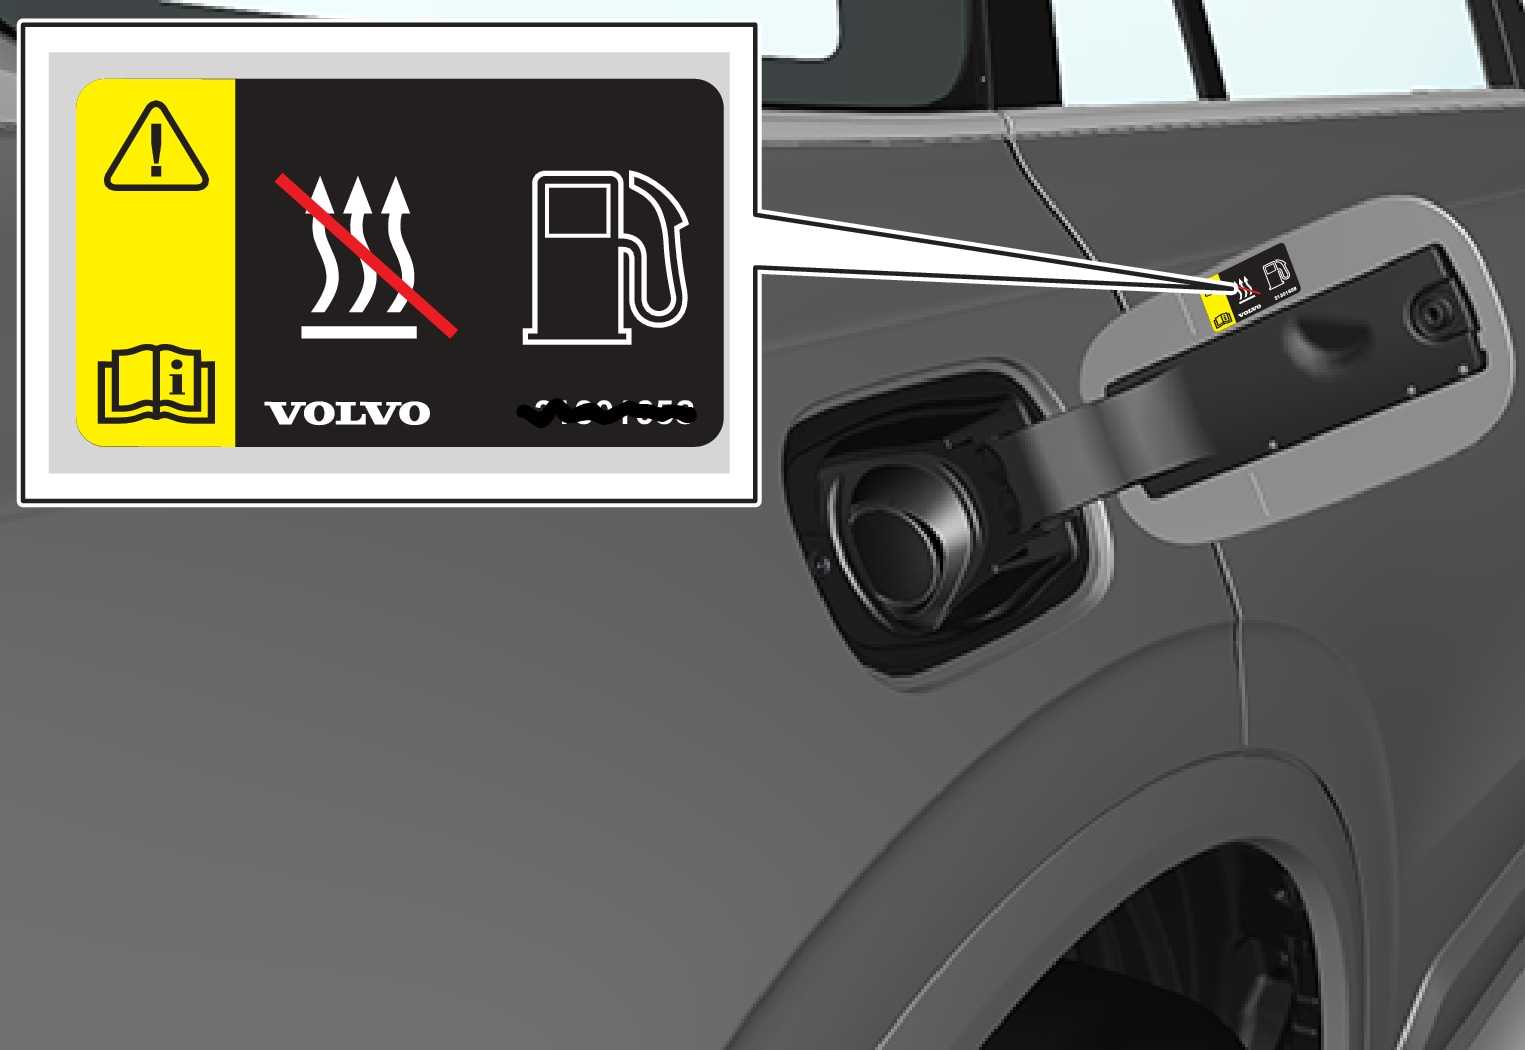 P5-1507–Climate–Fuel cap heater warning